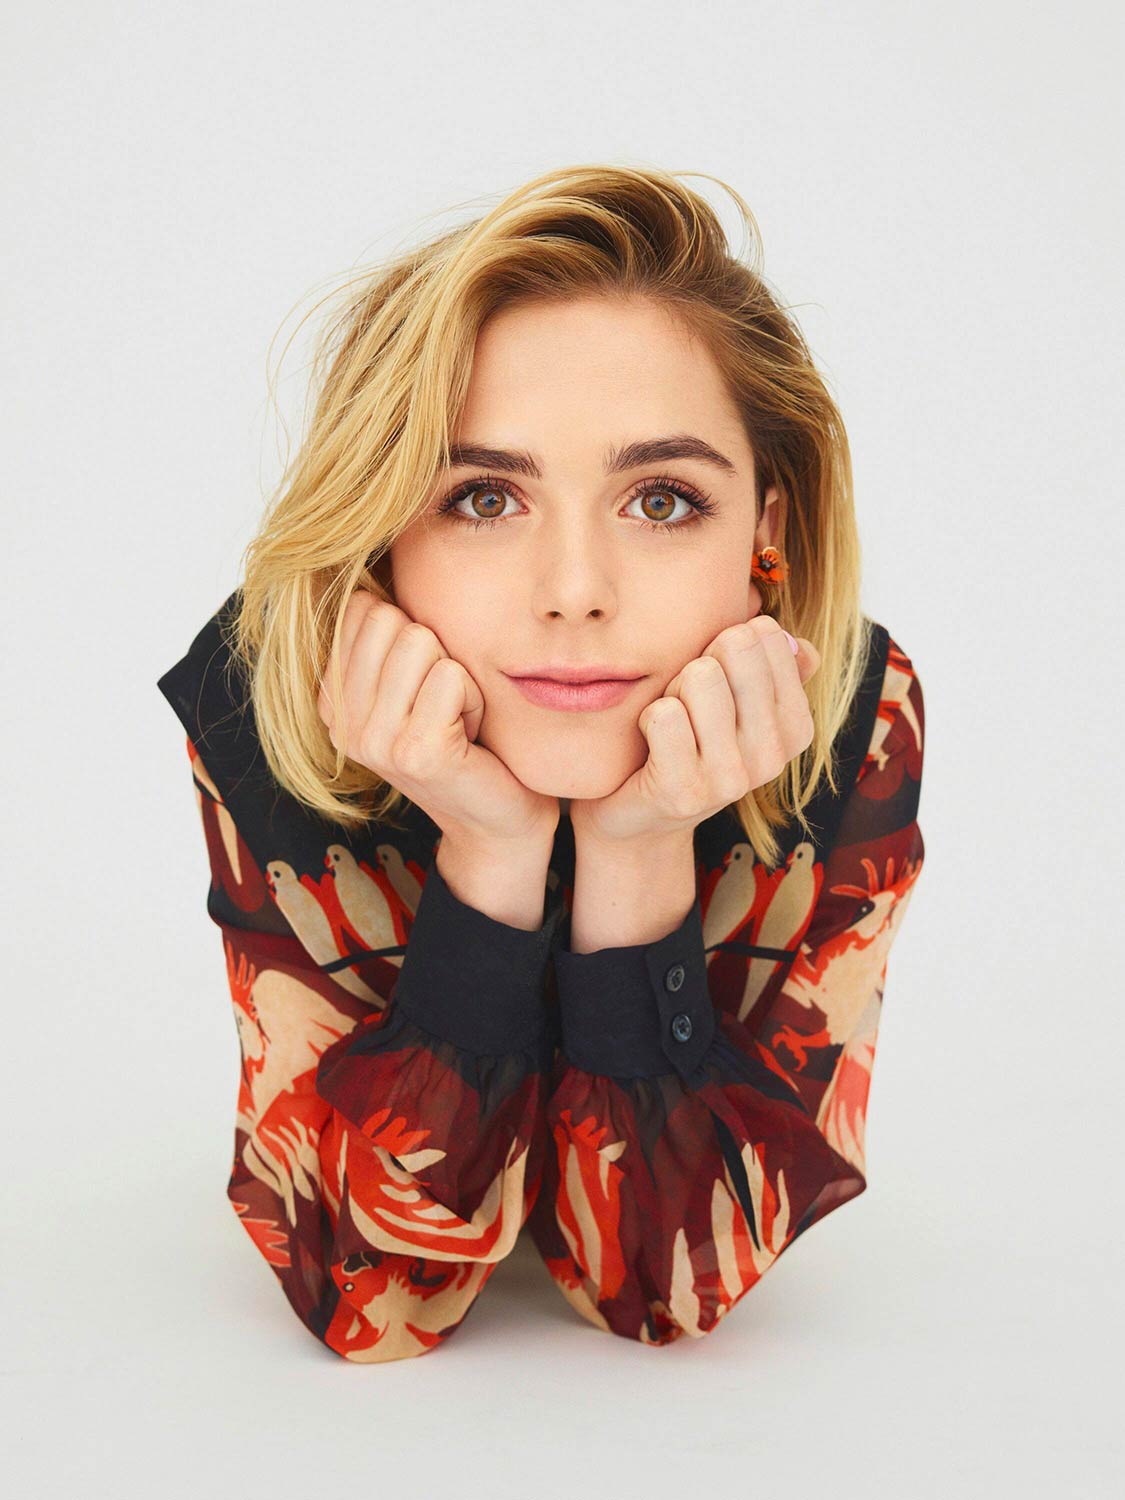 L'Officiel Paris - Kiernan Shipka - Hair and Make Up by Massimo Serini